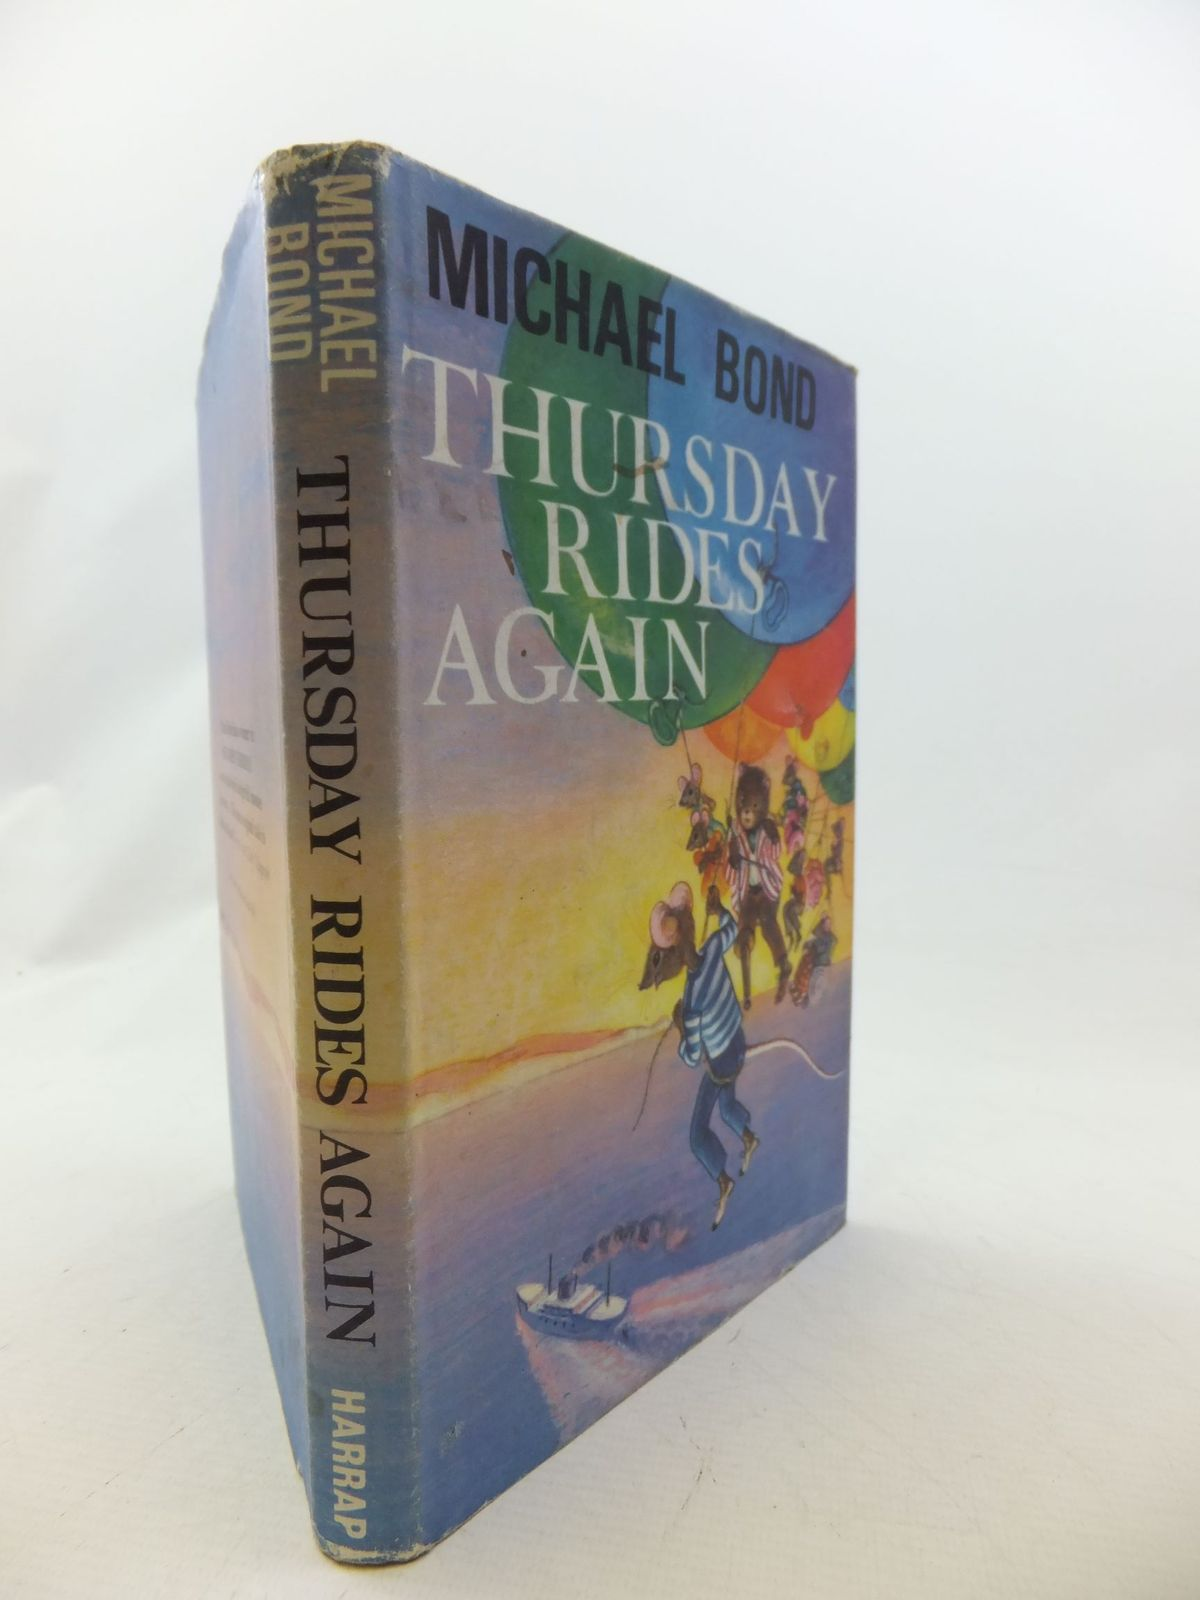 Photo of THURSDAY RIDES AGAIN written by Bond, Michael illustrated by Sanders, Beryl published by George G. Harrap & Co. Ltd. (STOCK CODE: 1109397)  for sale by Stella & Rose's Books